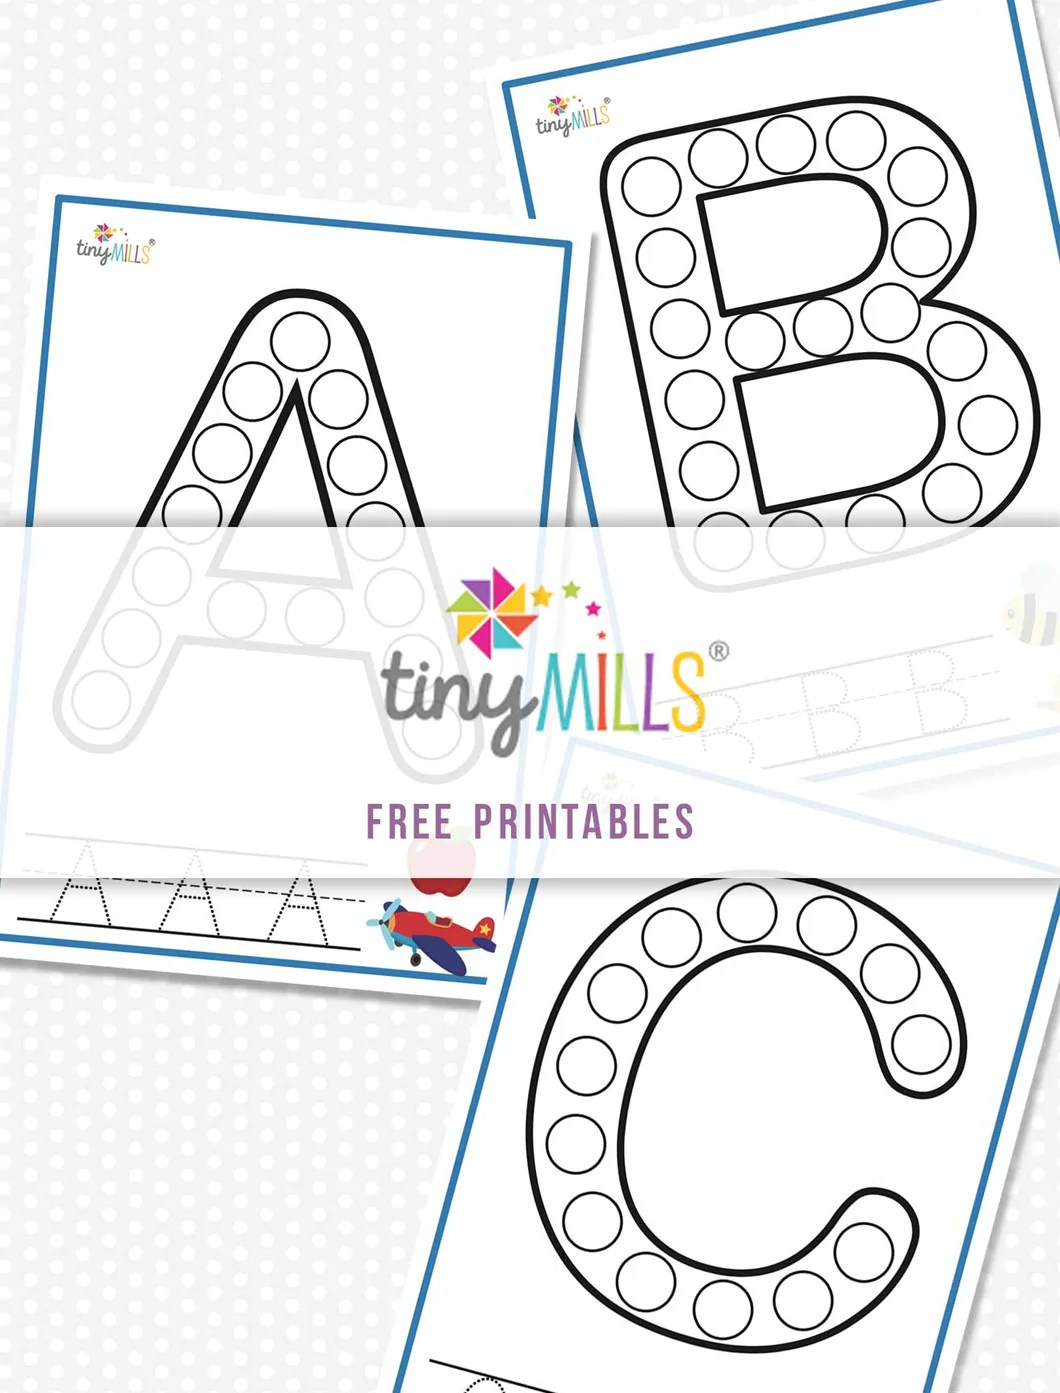 small resolution of Free Printable Stamp \u0026 Count ABC Worksheet (Full 26 Alphabet) - Tiny Mills®